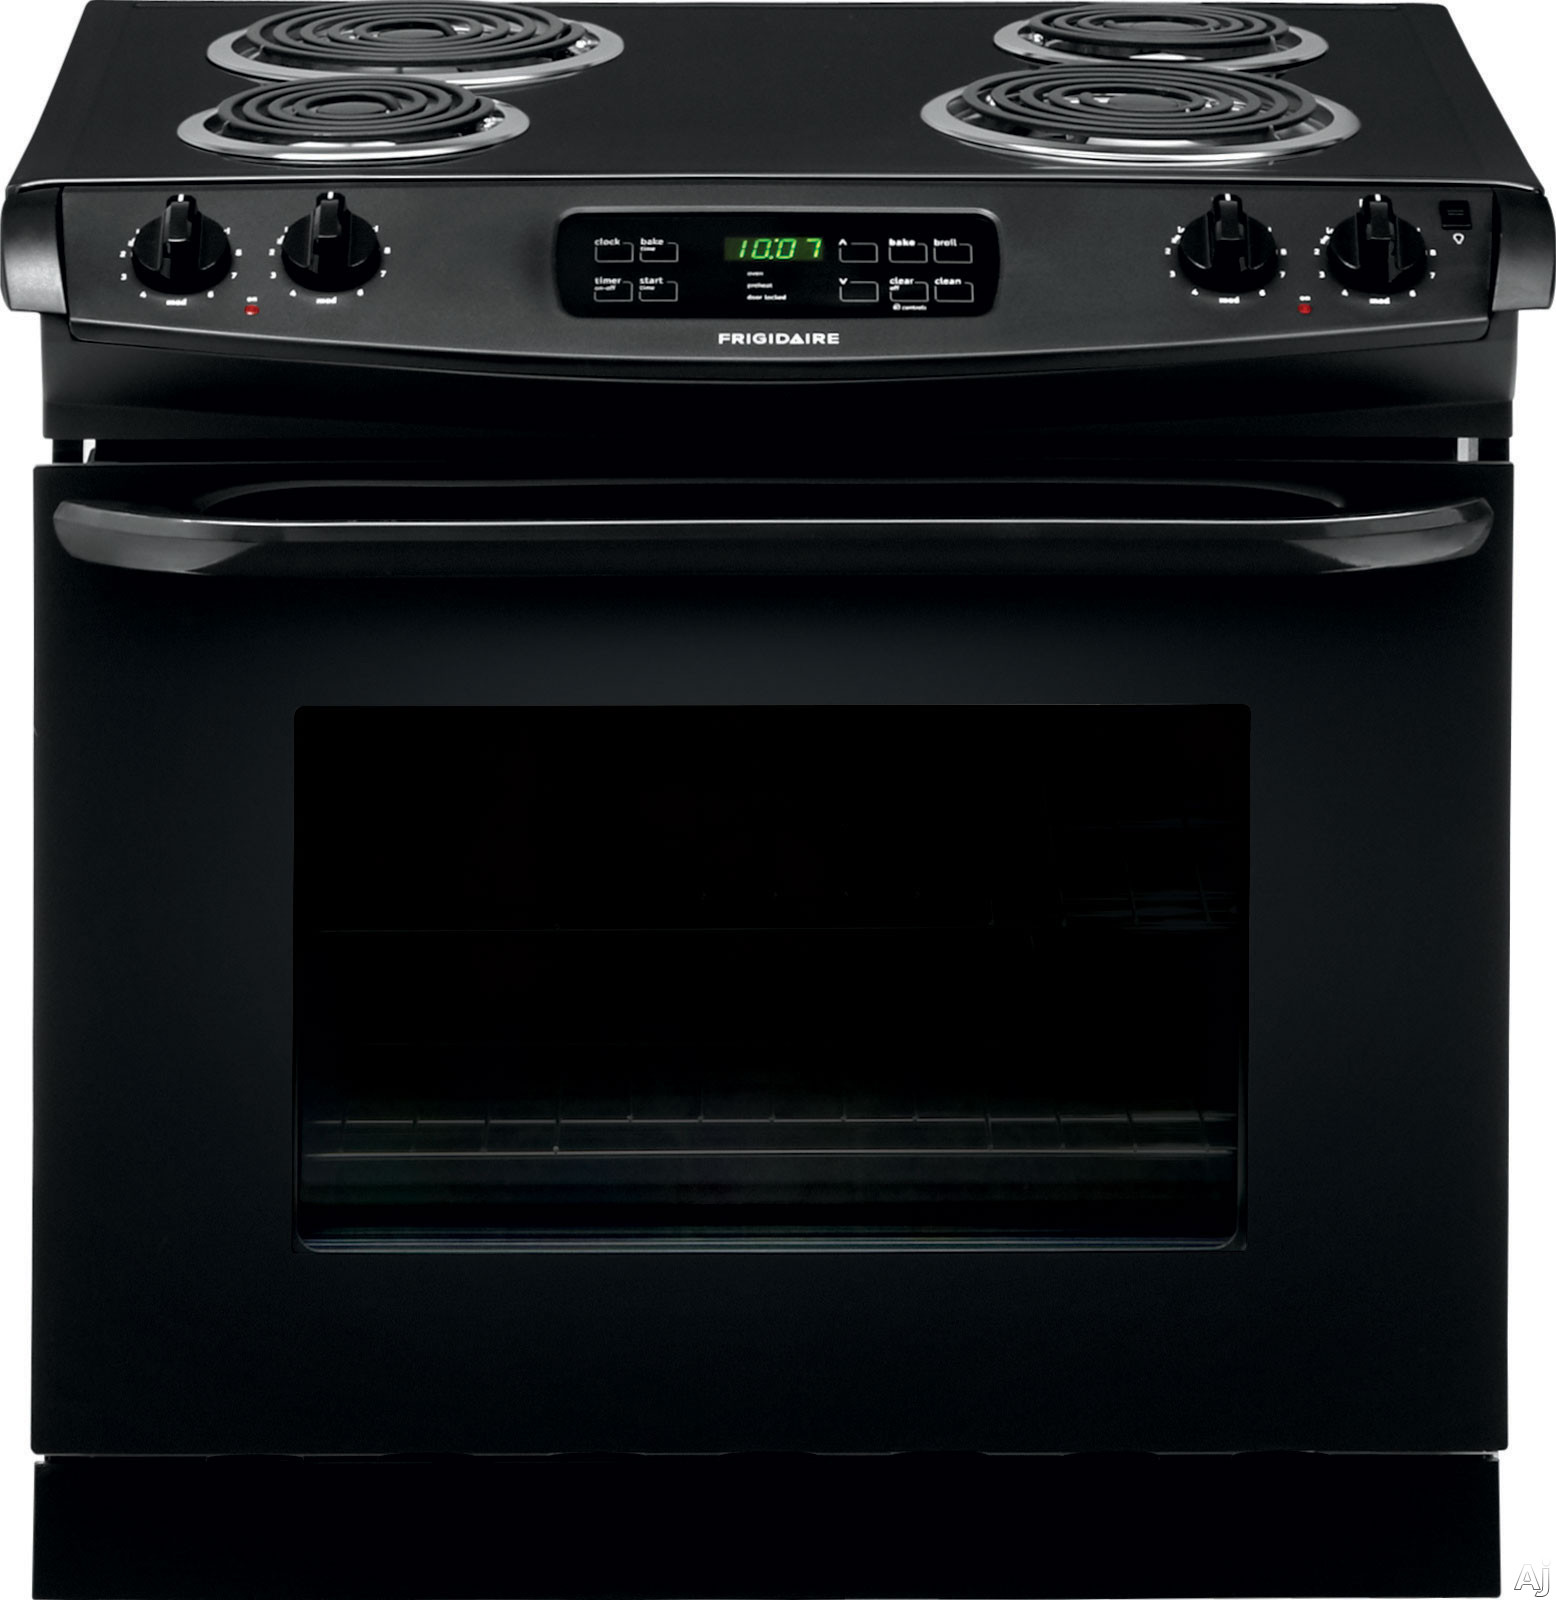 Frigidaire FFED3015PB 30 Inch Drop-in Electric Range with 4 Coil Elements, 4.6 cu. ft. Self-Clean Oven, Delay Clean, Delay Start, Hi/Lo Broil Option and Auto Oven Shut-Off: Black